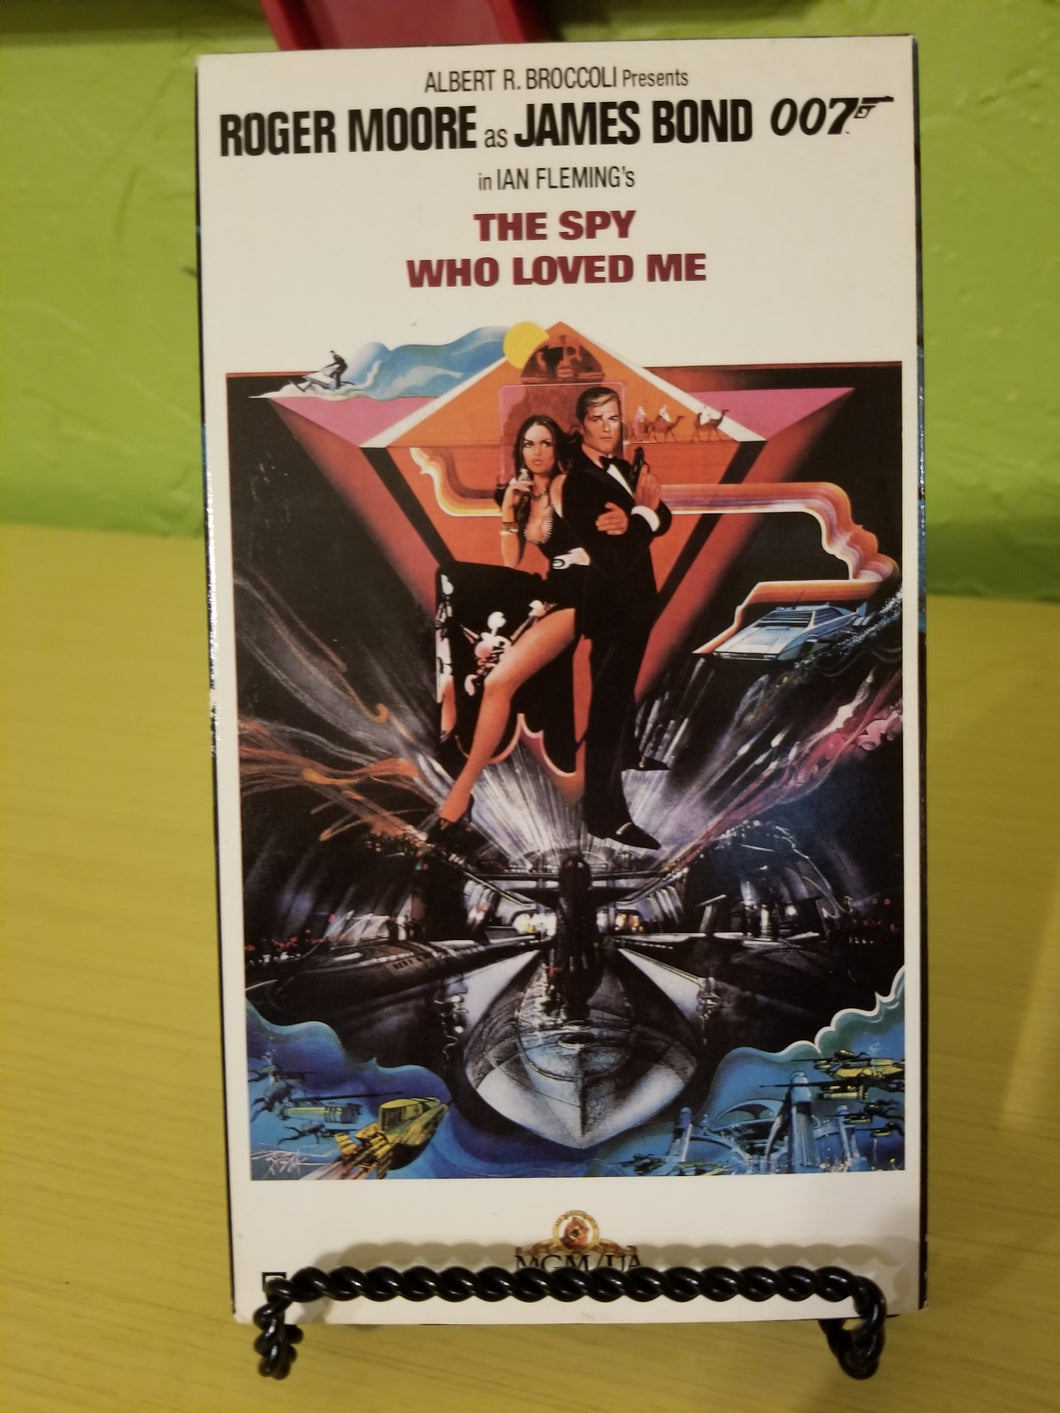 The Spy Who Loved Me 007 VHS